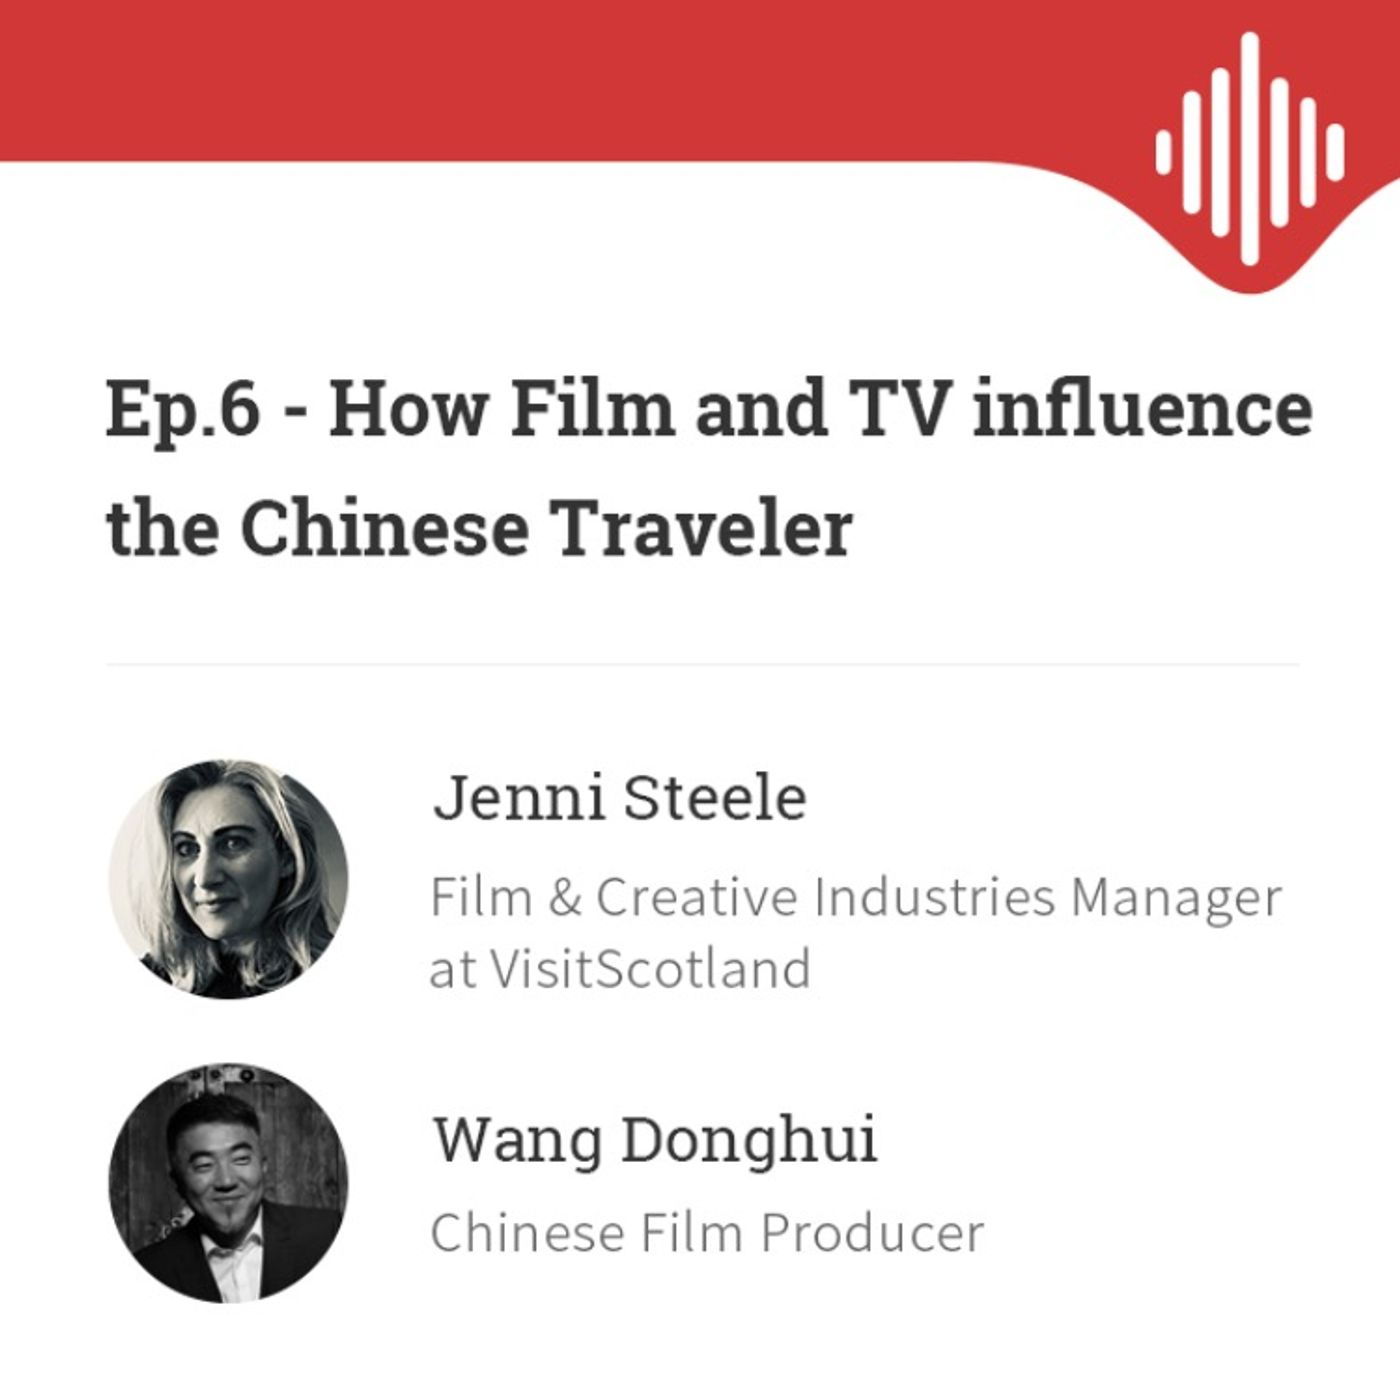 Ep.6 How Film and TV influence the Chinese Traveler, with Jenni Steele of VisitScotland and Chinese Film Producer Wang Donghui